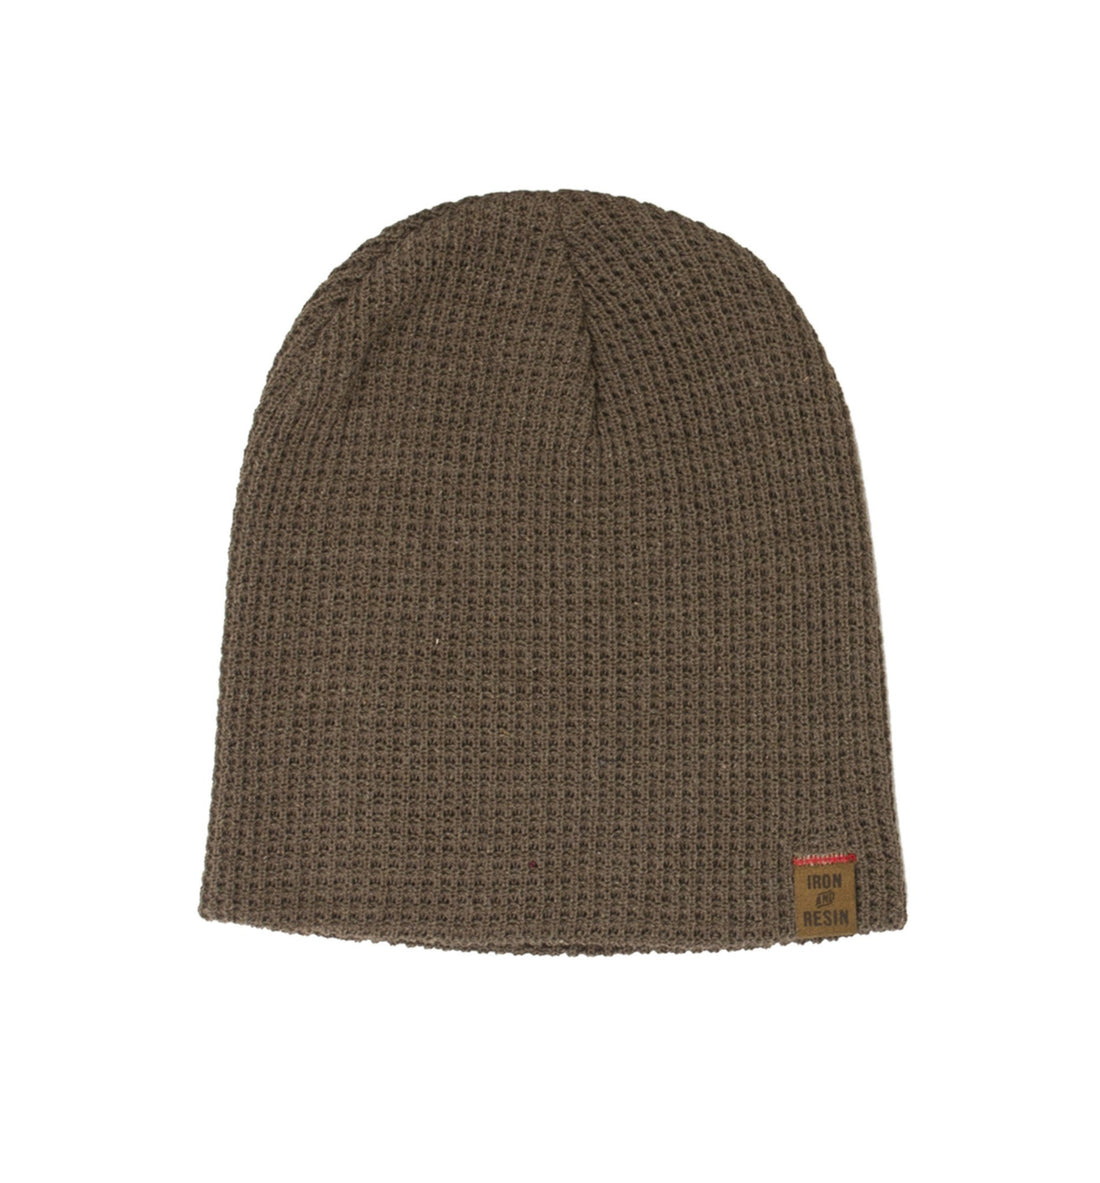 INR Outsider Beanie - Headwear - Iron and Resin